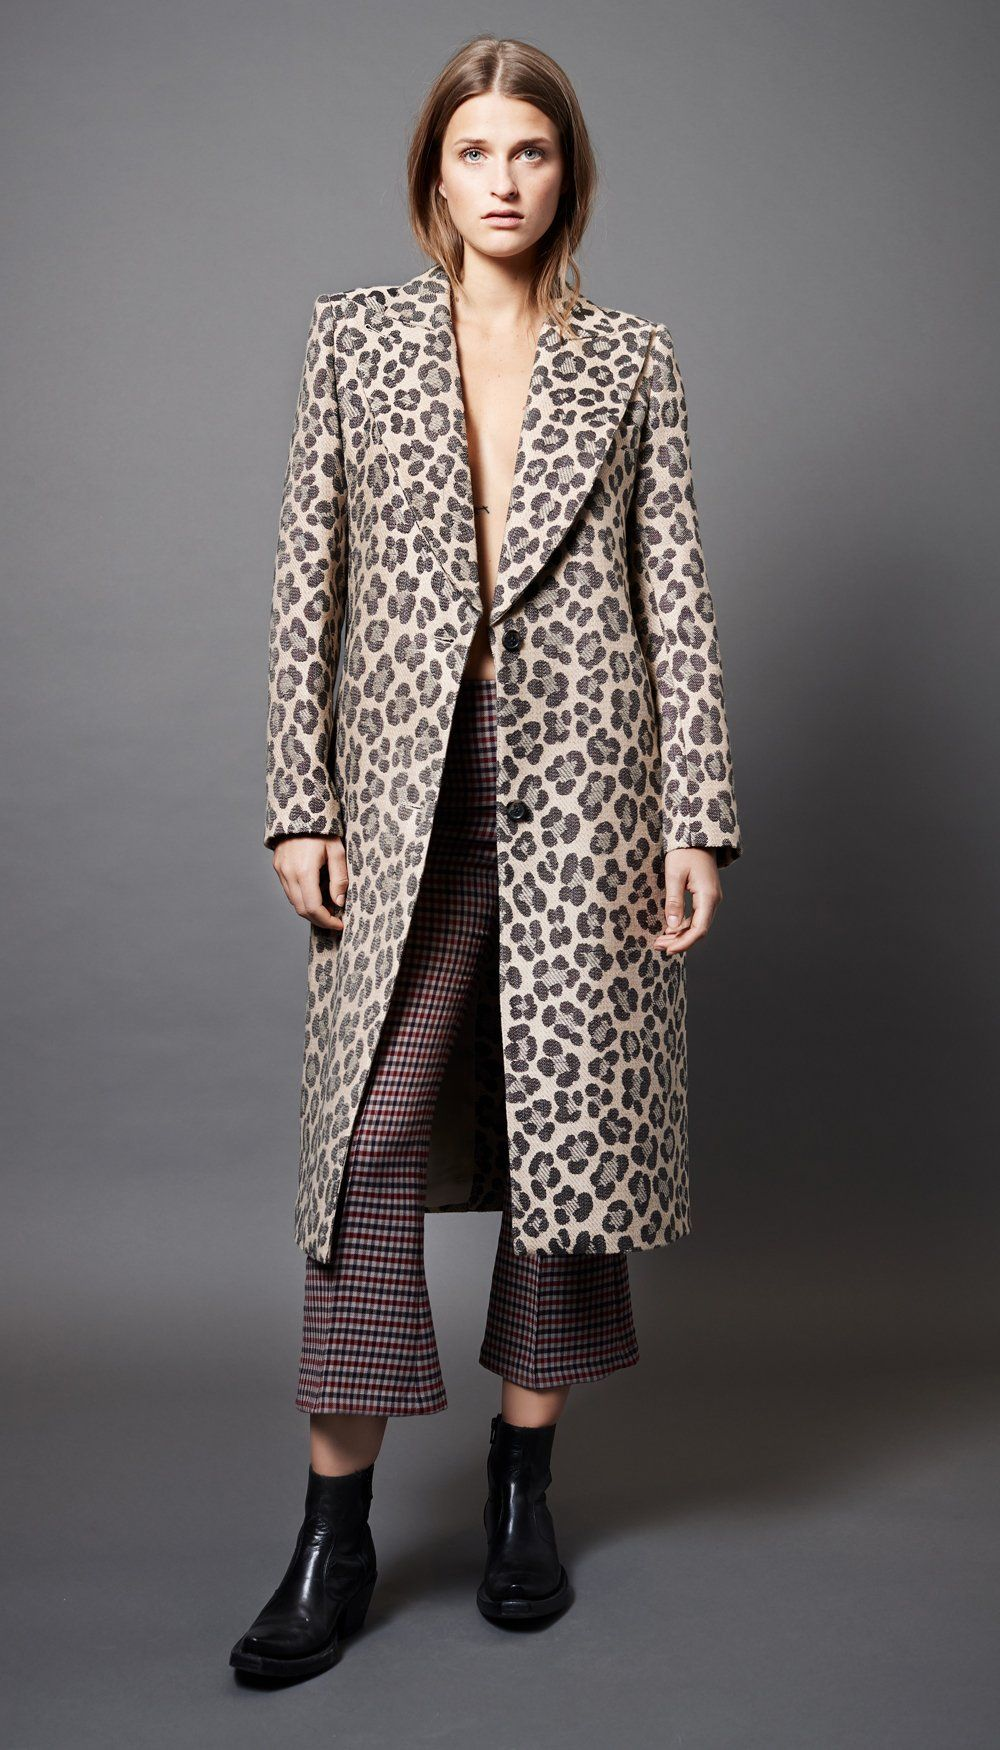 81eedd58bb7d Smythe - Peaked Lapel Coat | Clothing in 2019 | Leopard coat, Coat ...